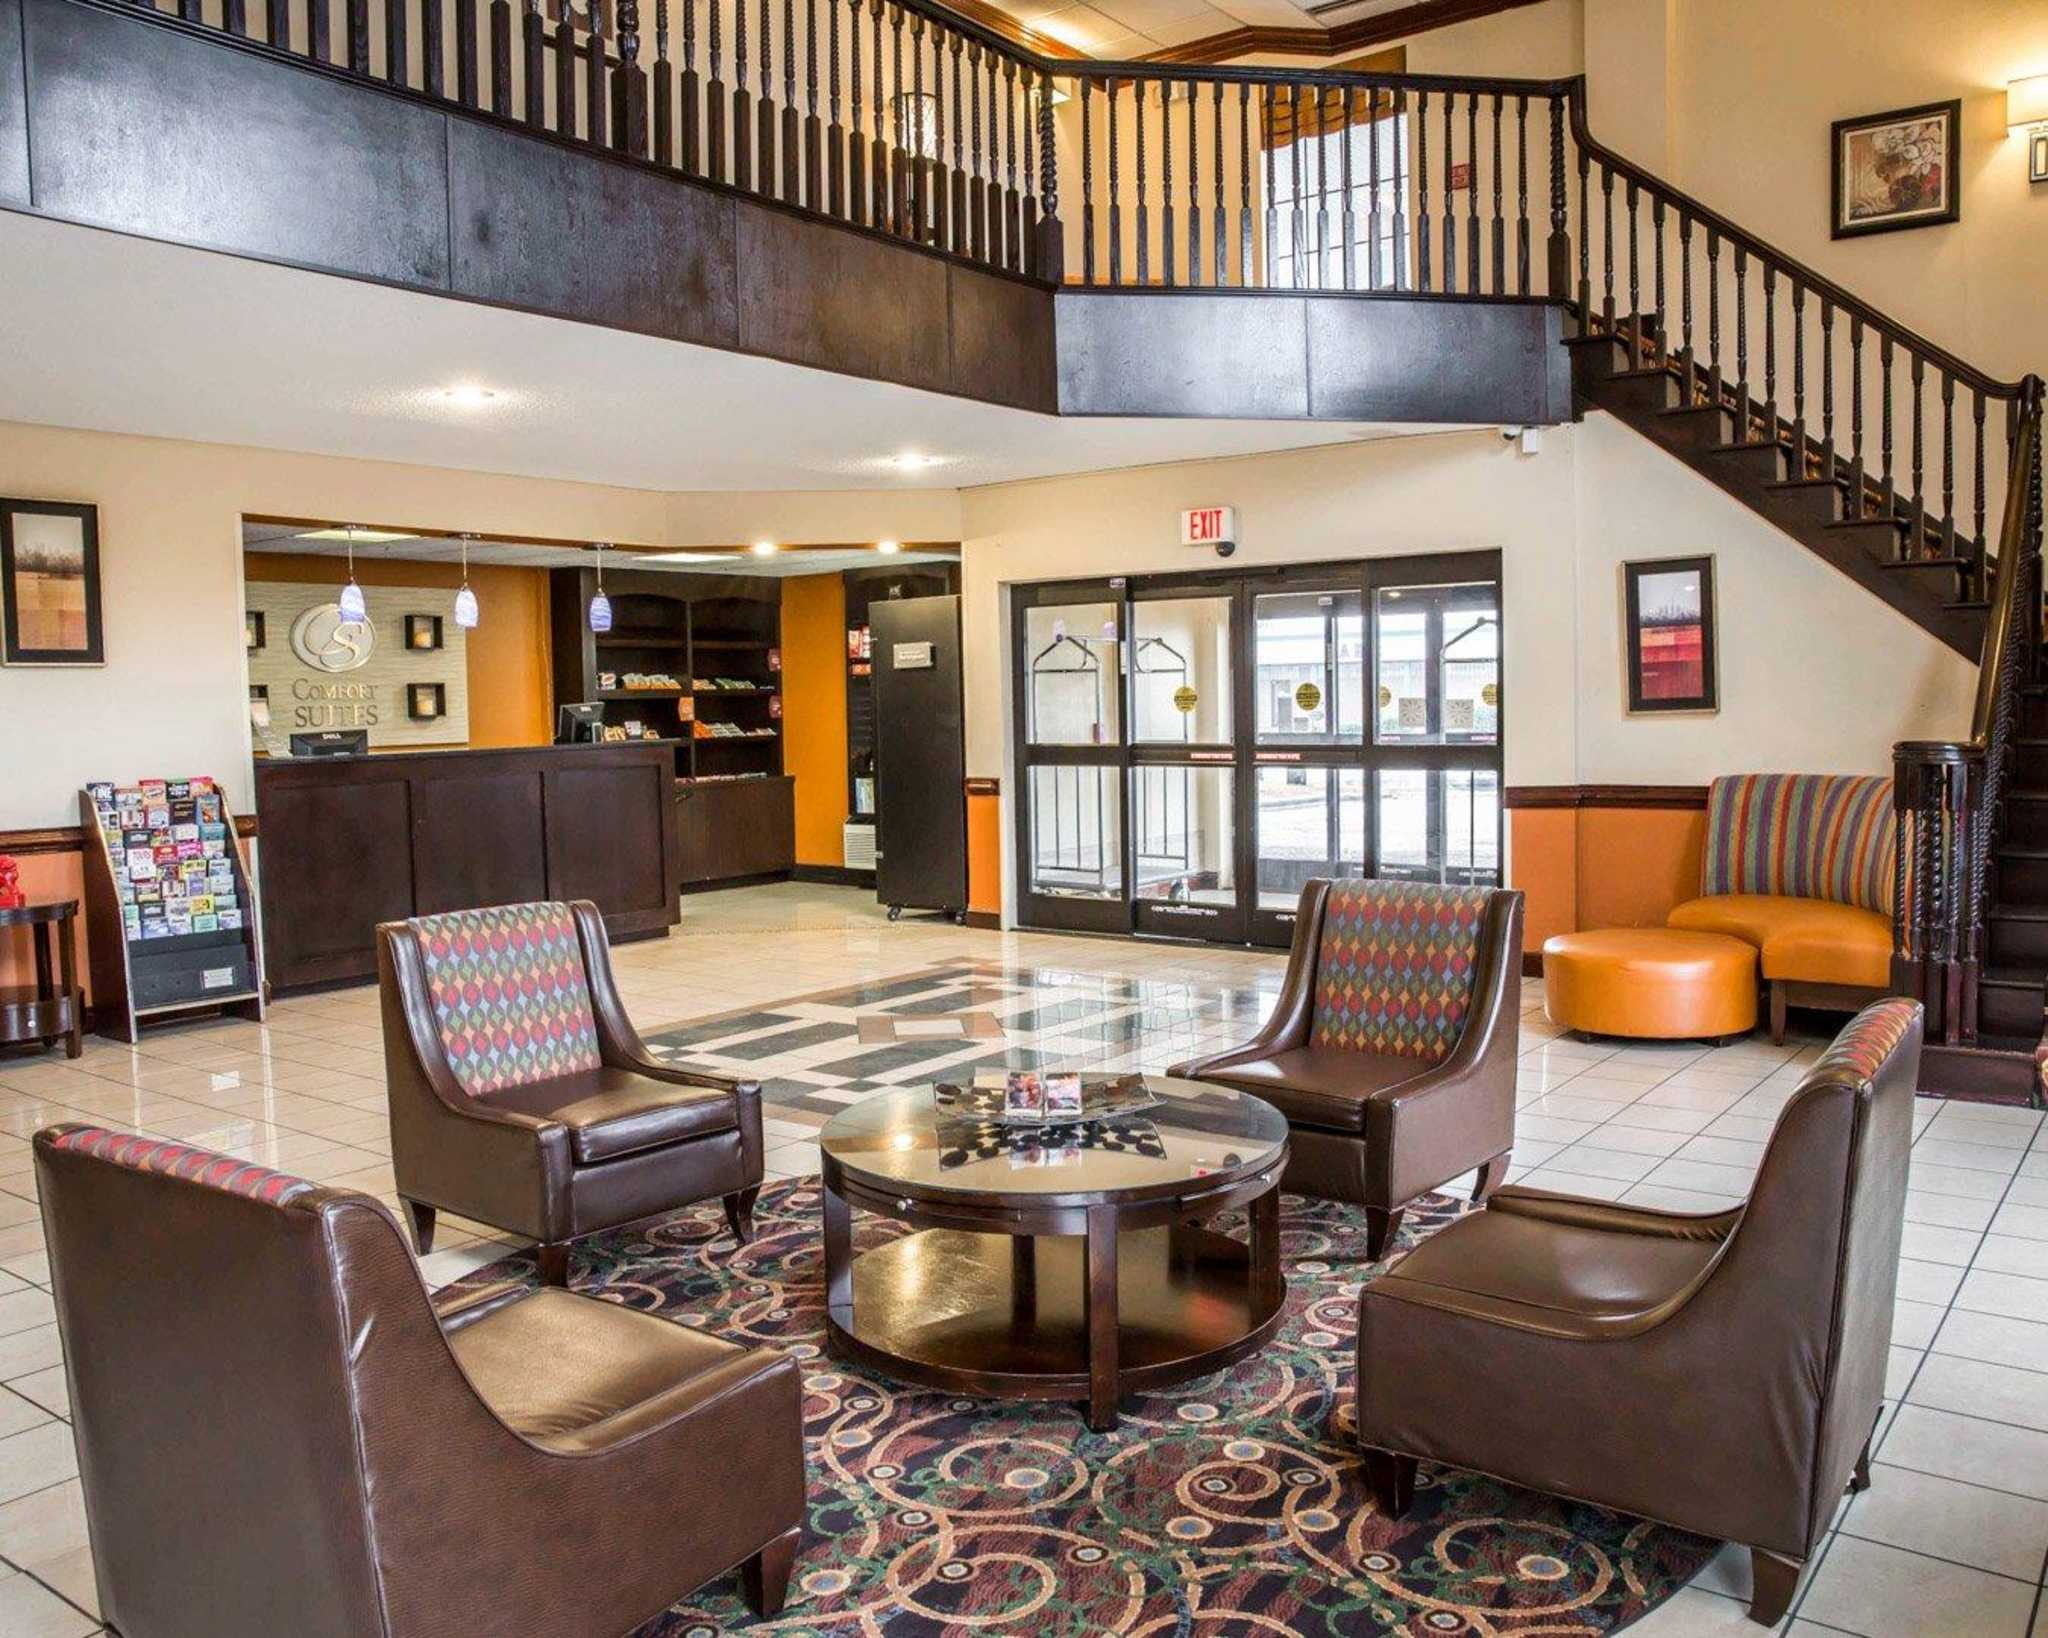 Comfort Suites Coupons Near Me In Jacksonville 8coupons